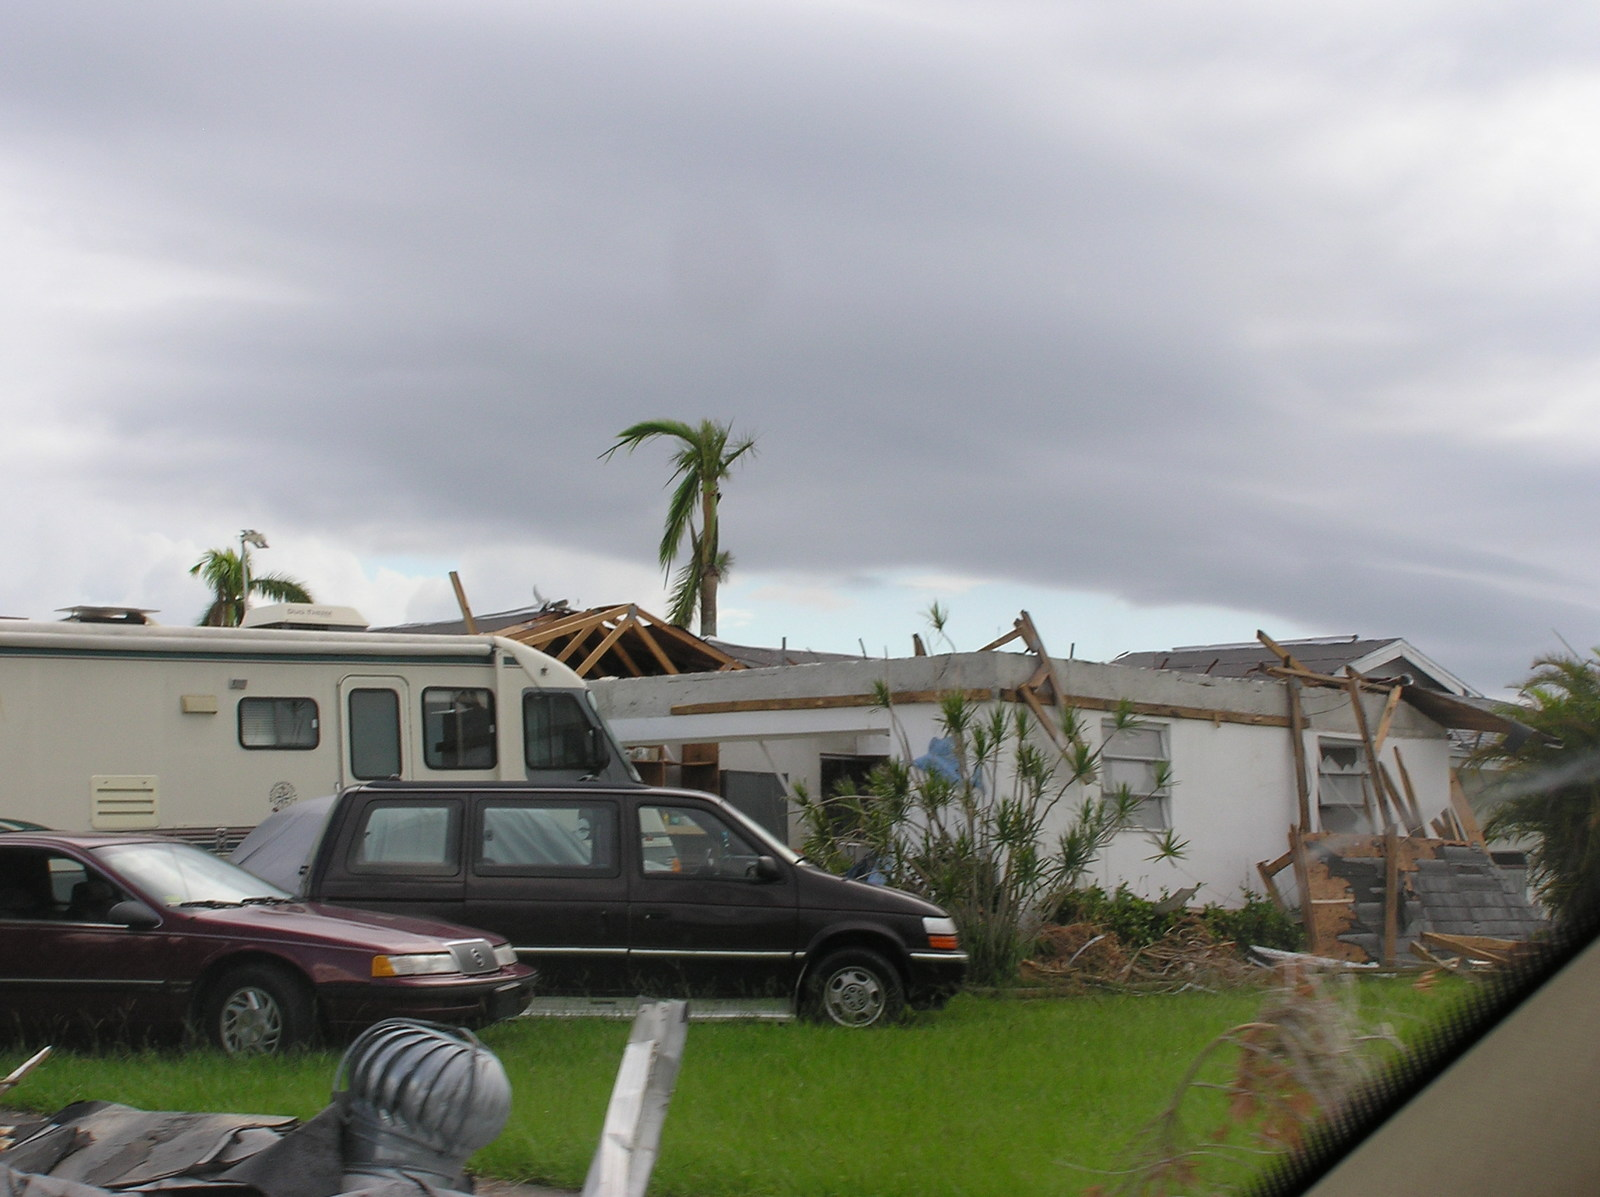 Hurricane Charley damage in west central Flordia.  [Among facilities affected:]  Sunrise Manor,  built by the Lake Wales Housing Authority.